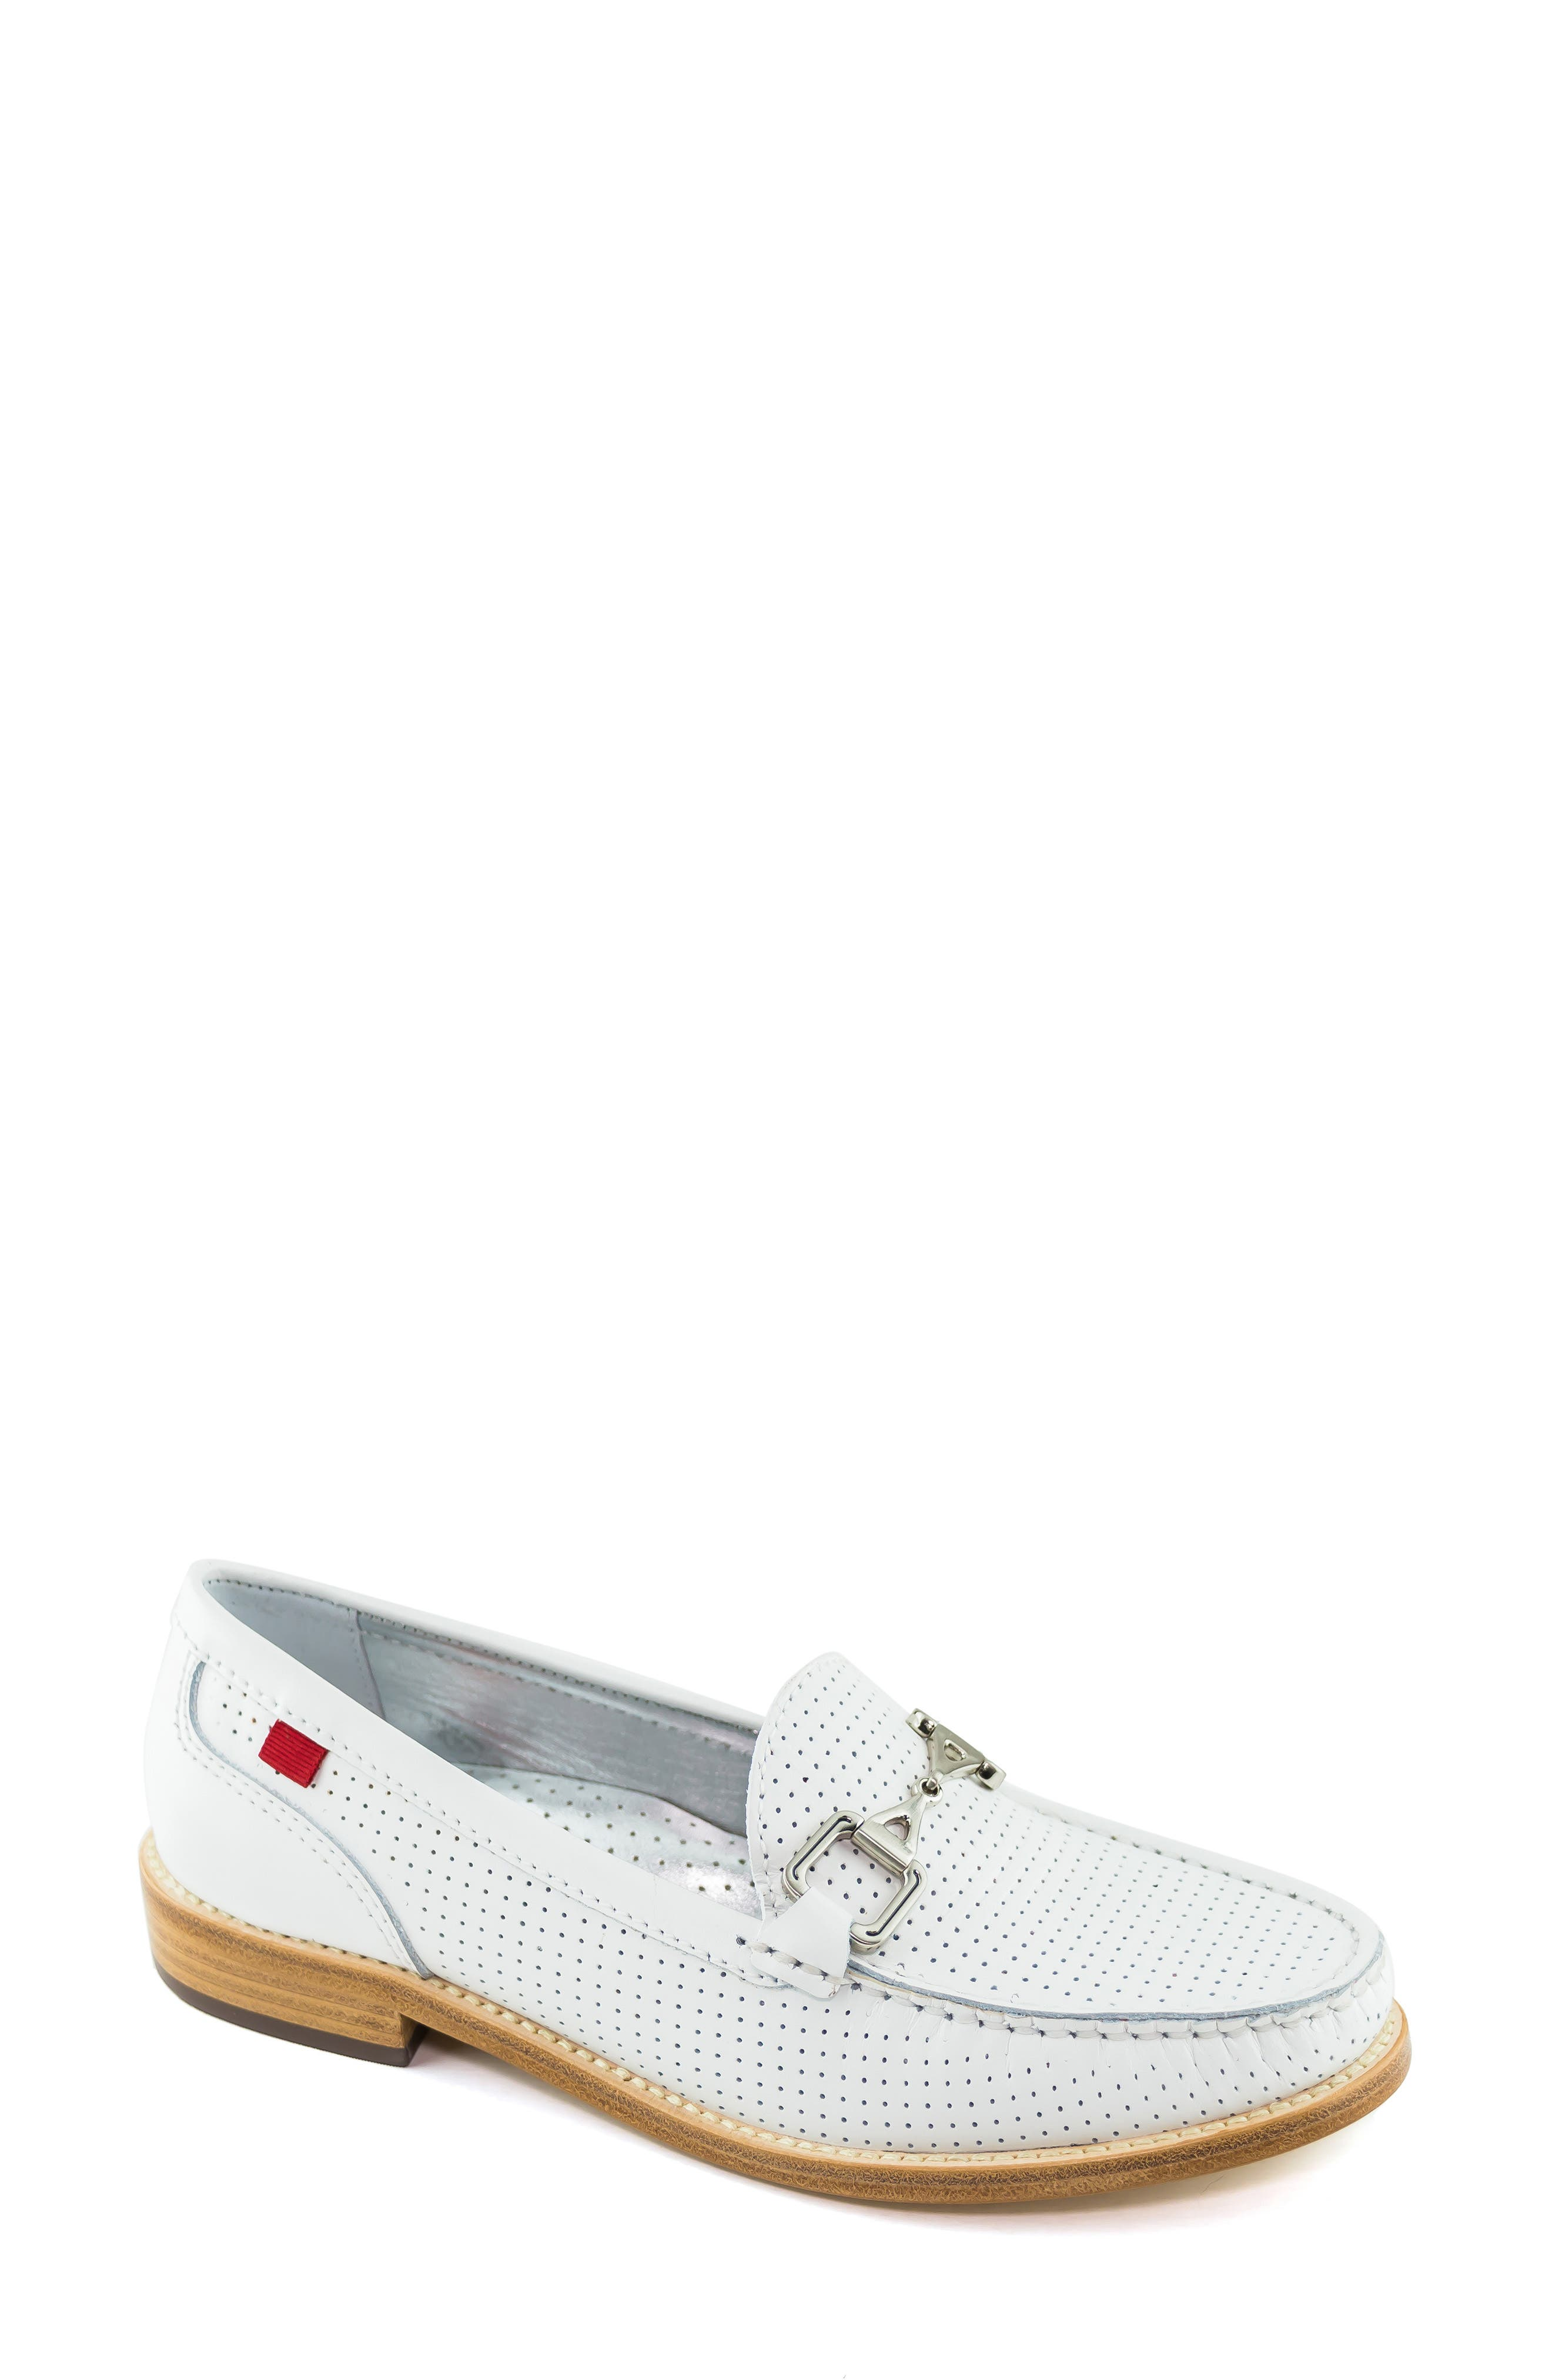 MARC JOSEPH NEW YORK, Park Ave Perforated Loafer, Main thumbnail 1, color, WHITE LEATHER